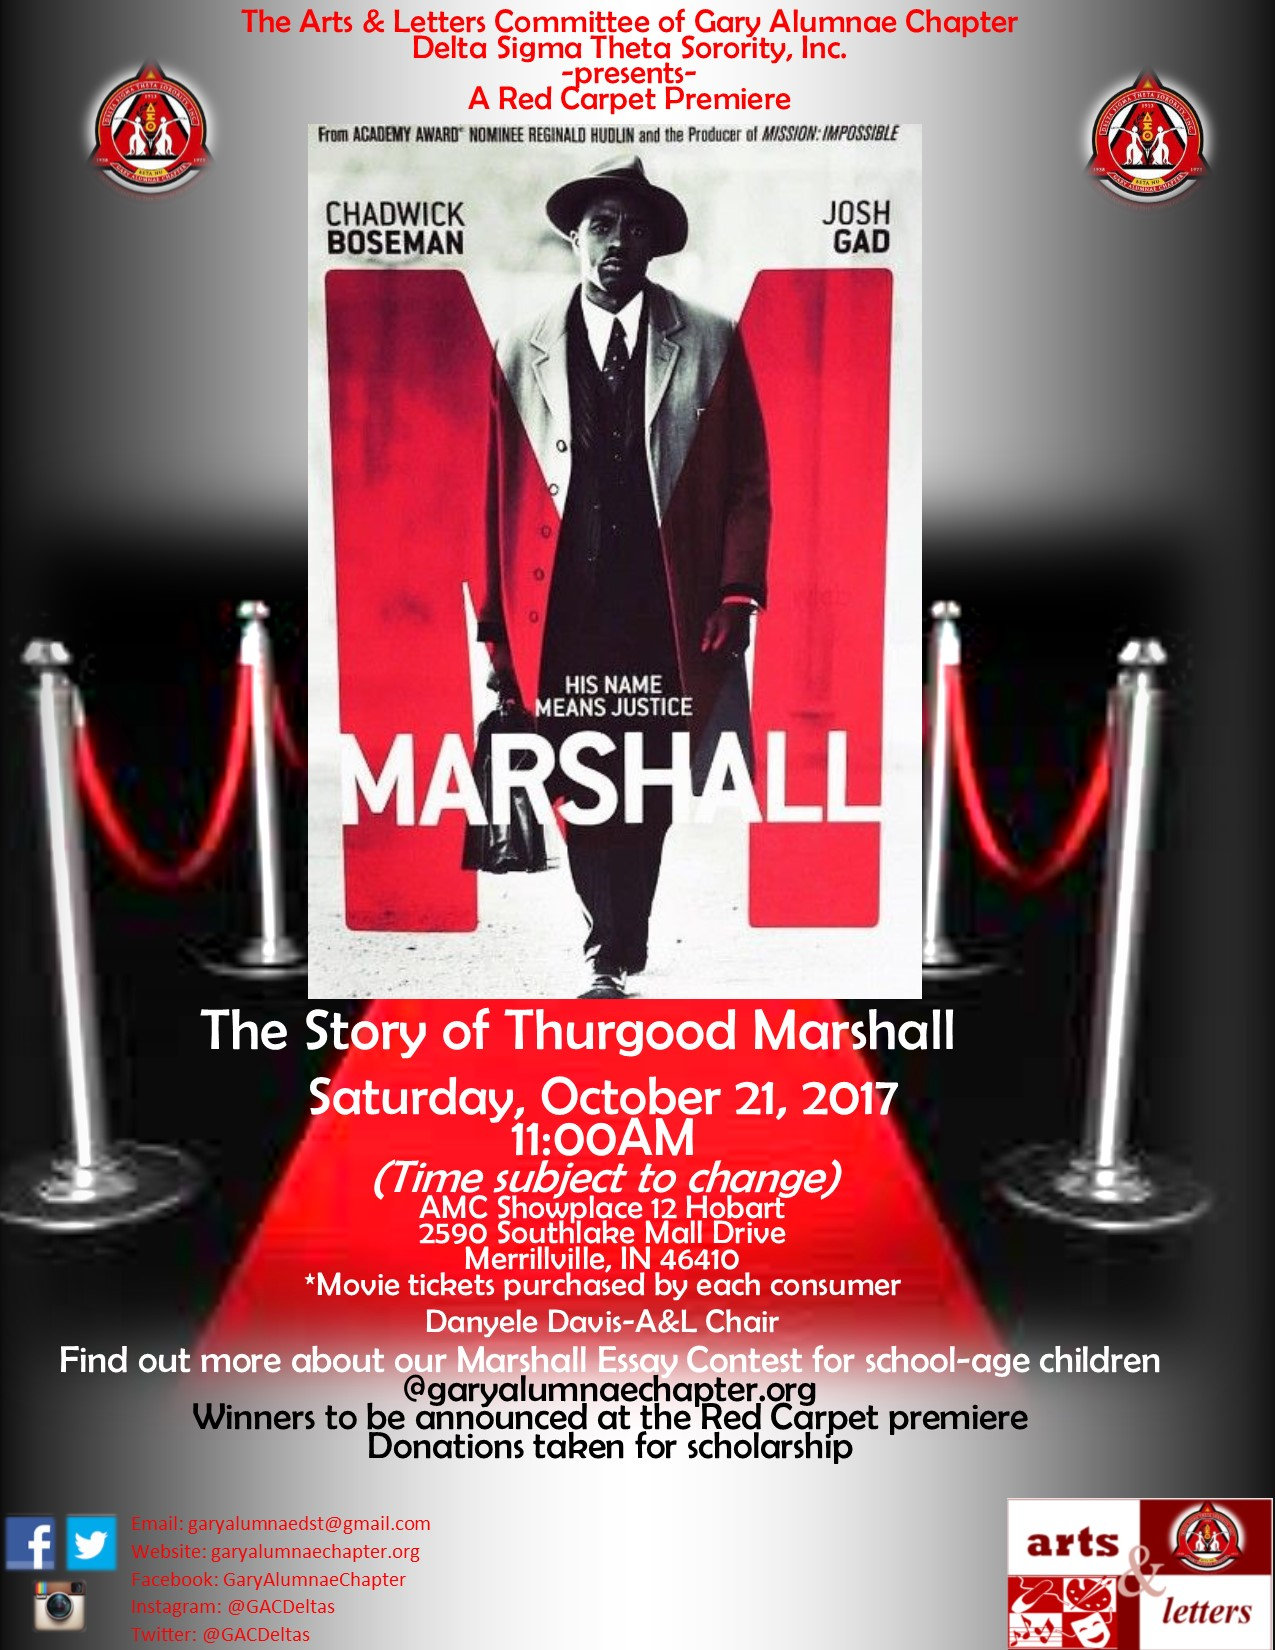 marshall delta sigma thetadelta sigma theta please join the arts and letters committee for our first red carpet movie premiere of marshall the story of thurgood marshall on saturday oct 21